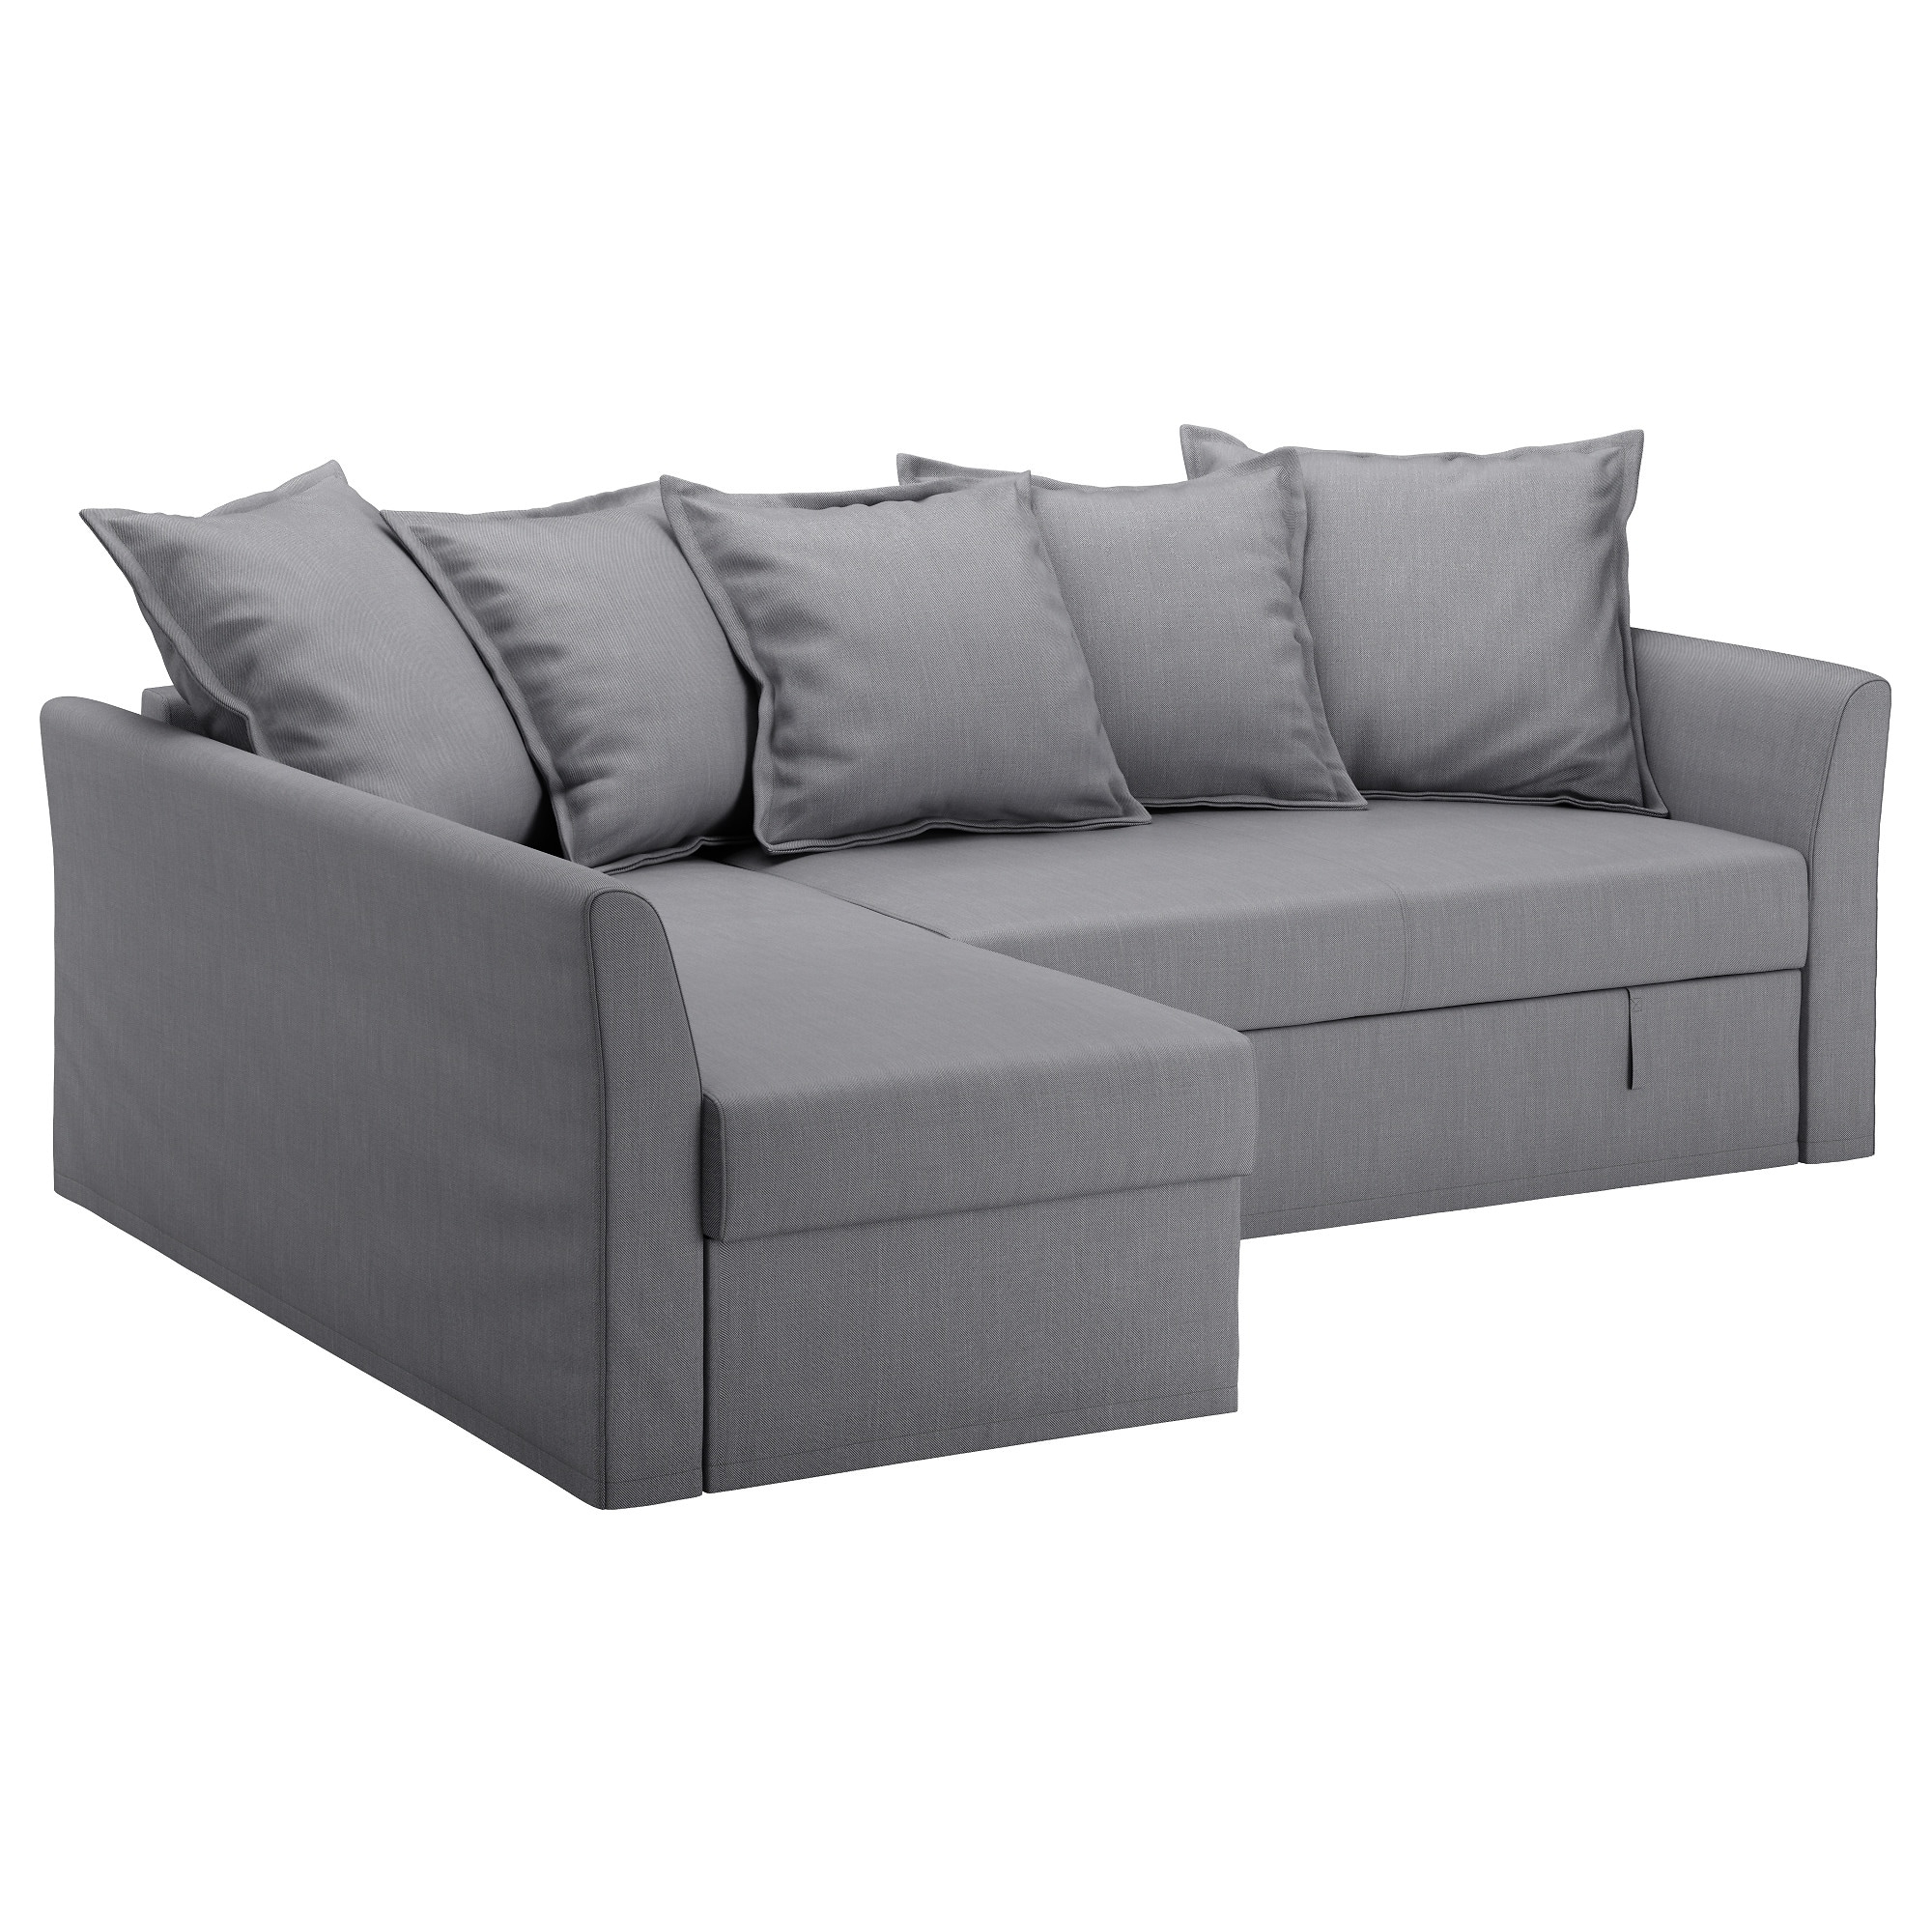 Sofa Beds Chairs Intended For Most Recently Released Holmsund Corner Sofa Bed Nordvalla Medium Grey – Ikea (Gallery 5 of 20)